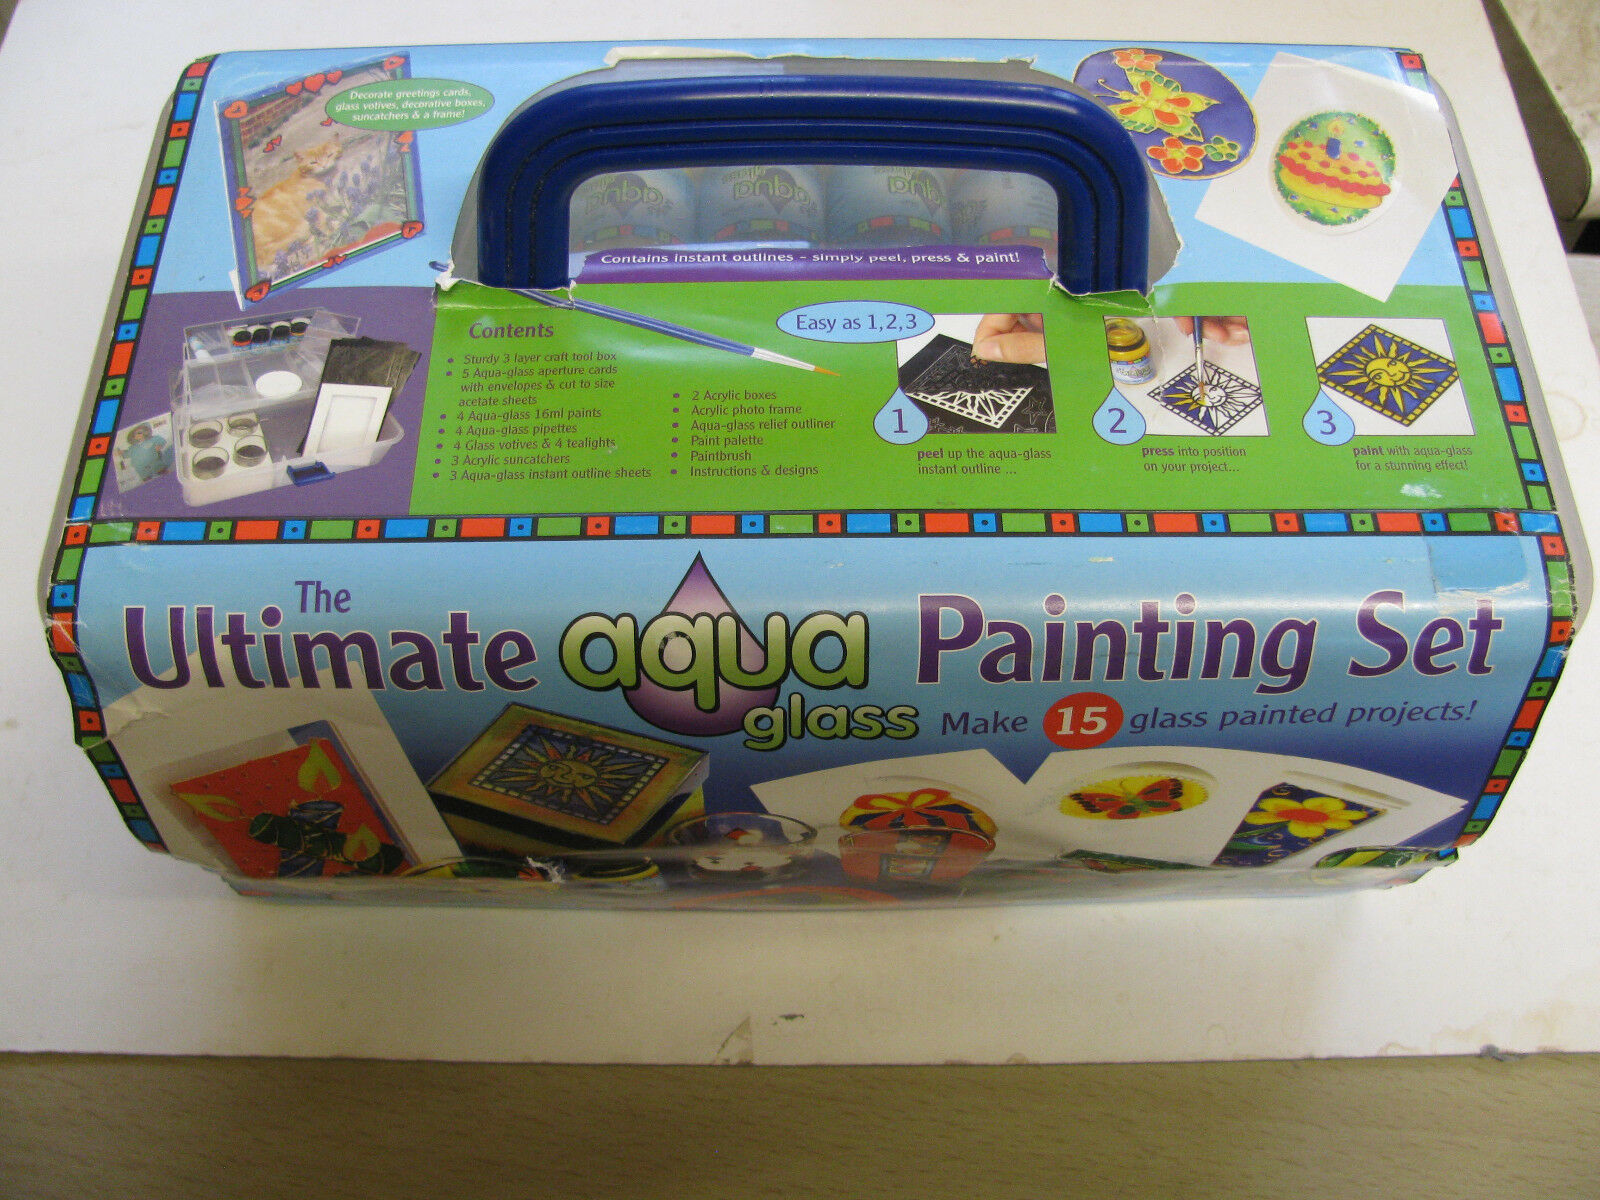 Craft Tool Box Sets Kits Various Designs Create Glass Painting Card Making